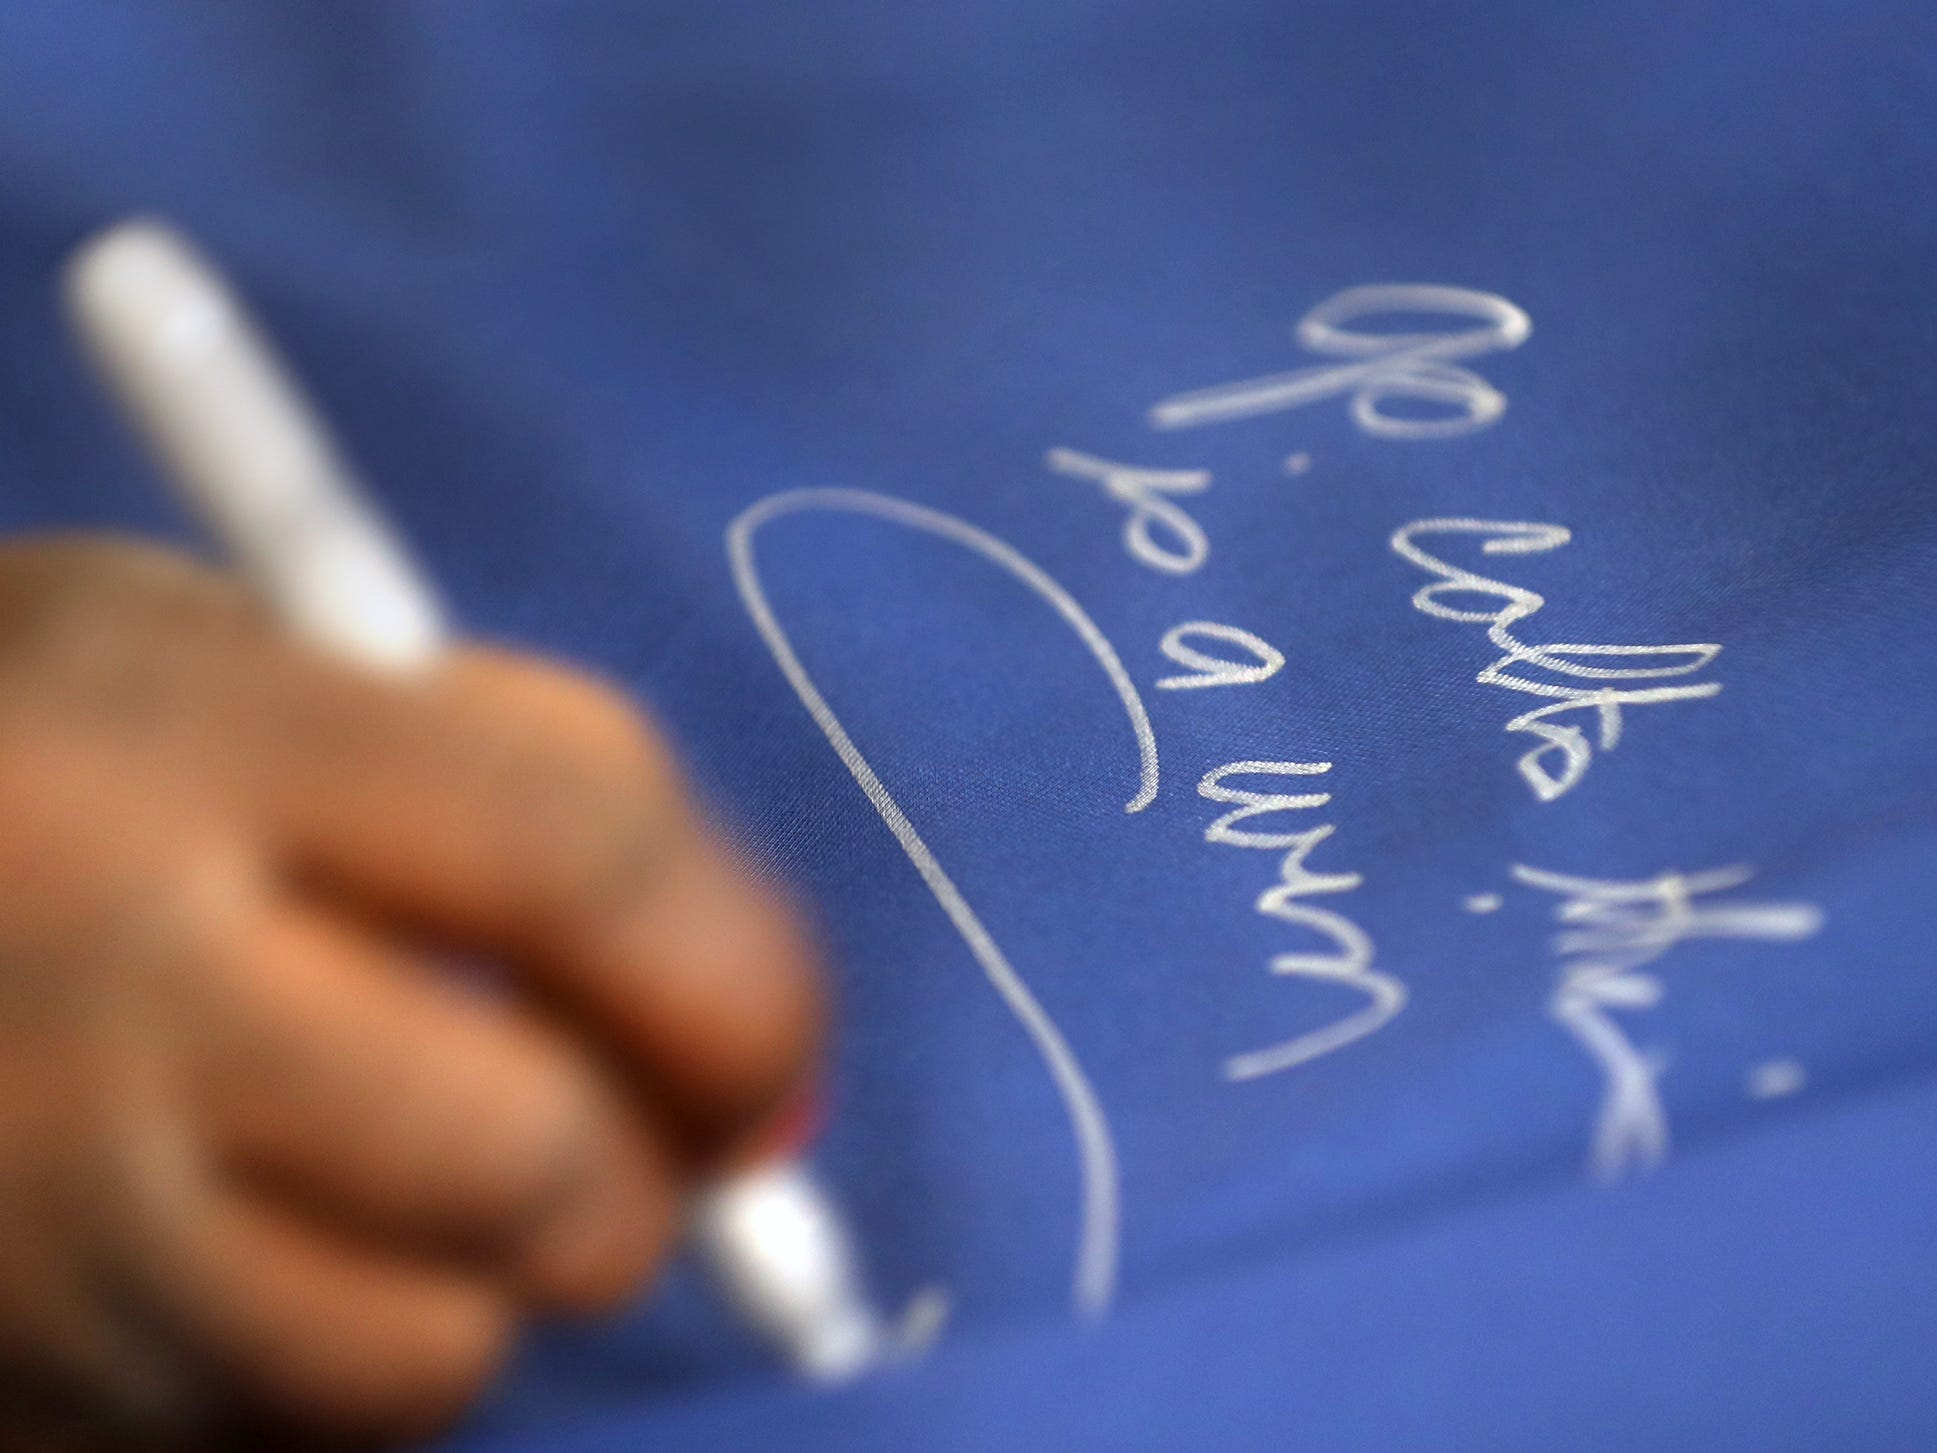 Connie Allender and other fans sign a 1-0 banner for the Colts at City Market, Thursday, Jan. 10, 2019.  The banner will be displayed for the team to see at the airport as they head off to their Kansas City playoff game.